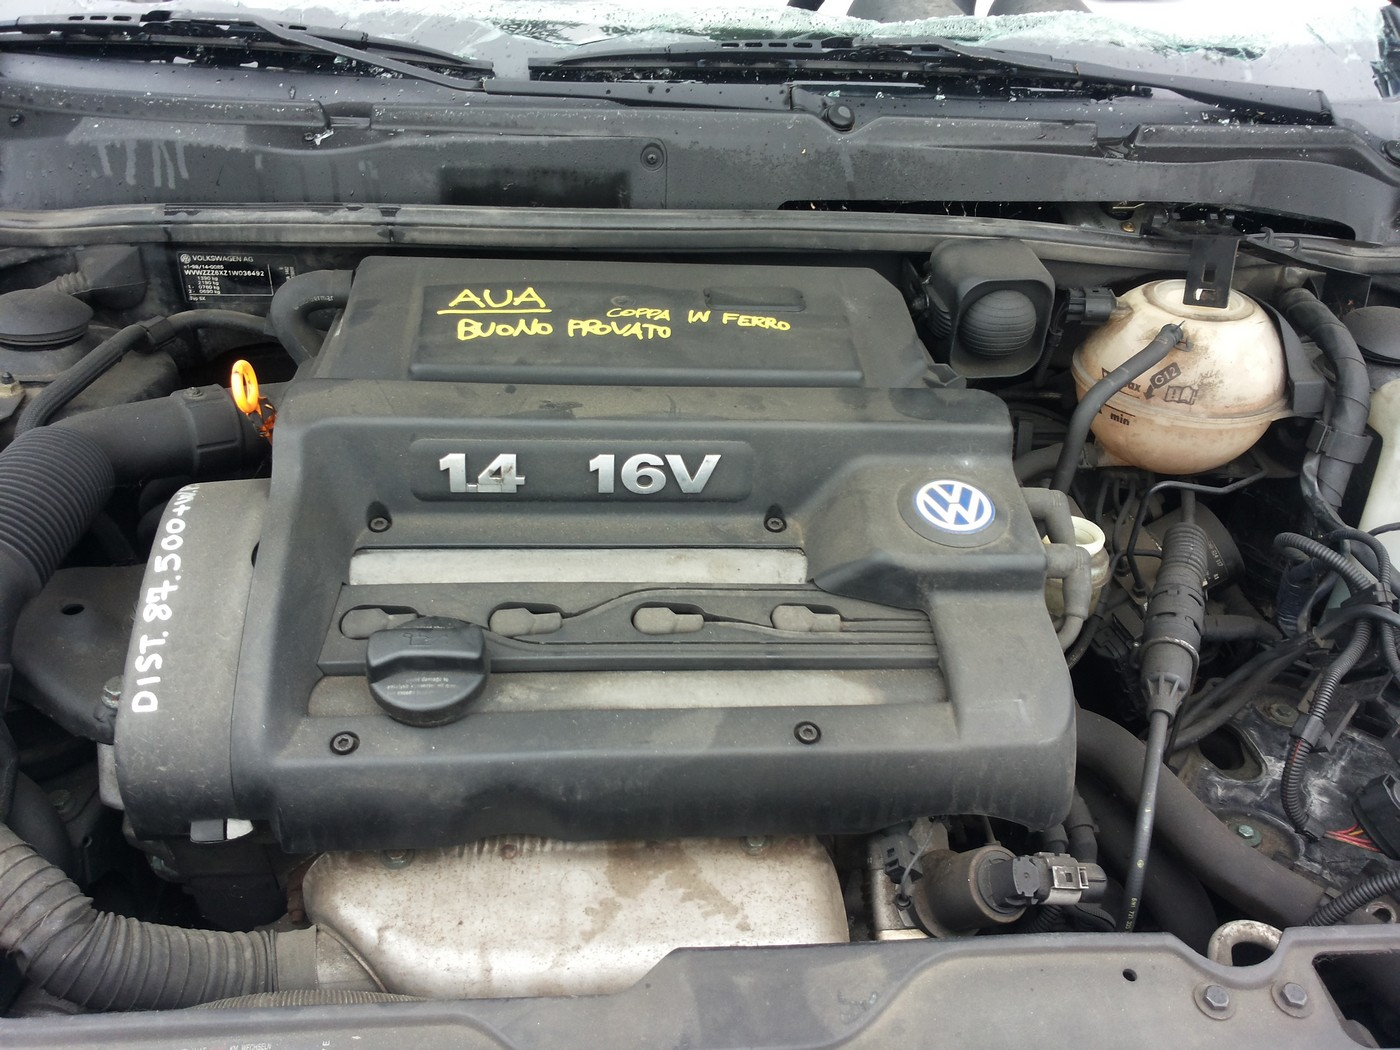 Volkswagen lupo an 2001 motor 1.4 16v tip aua